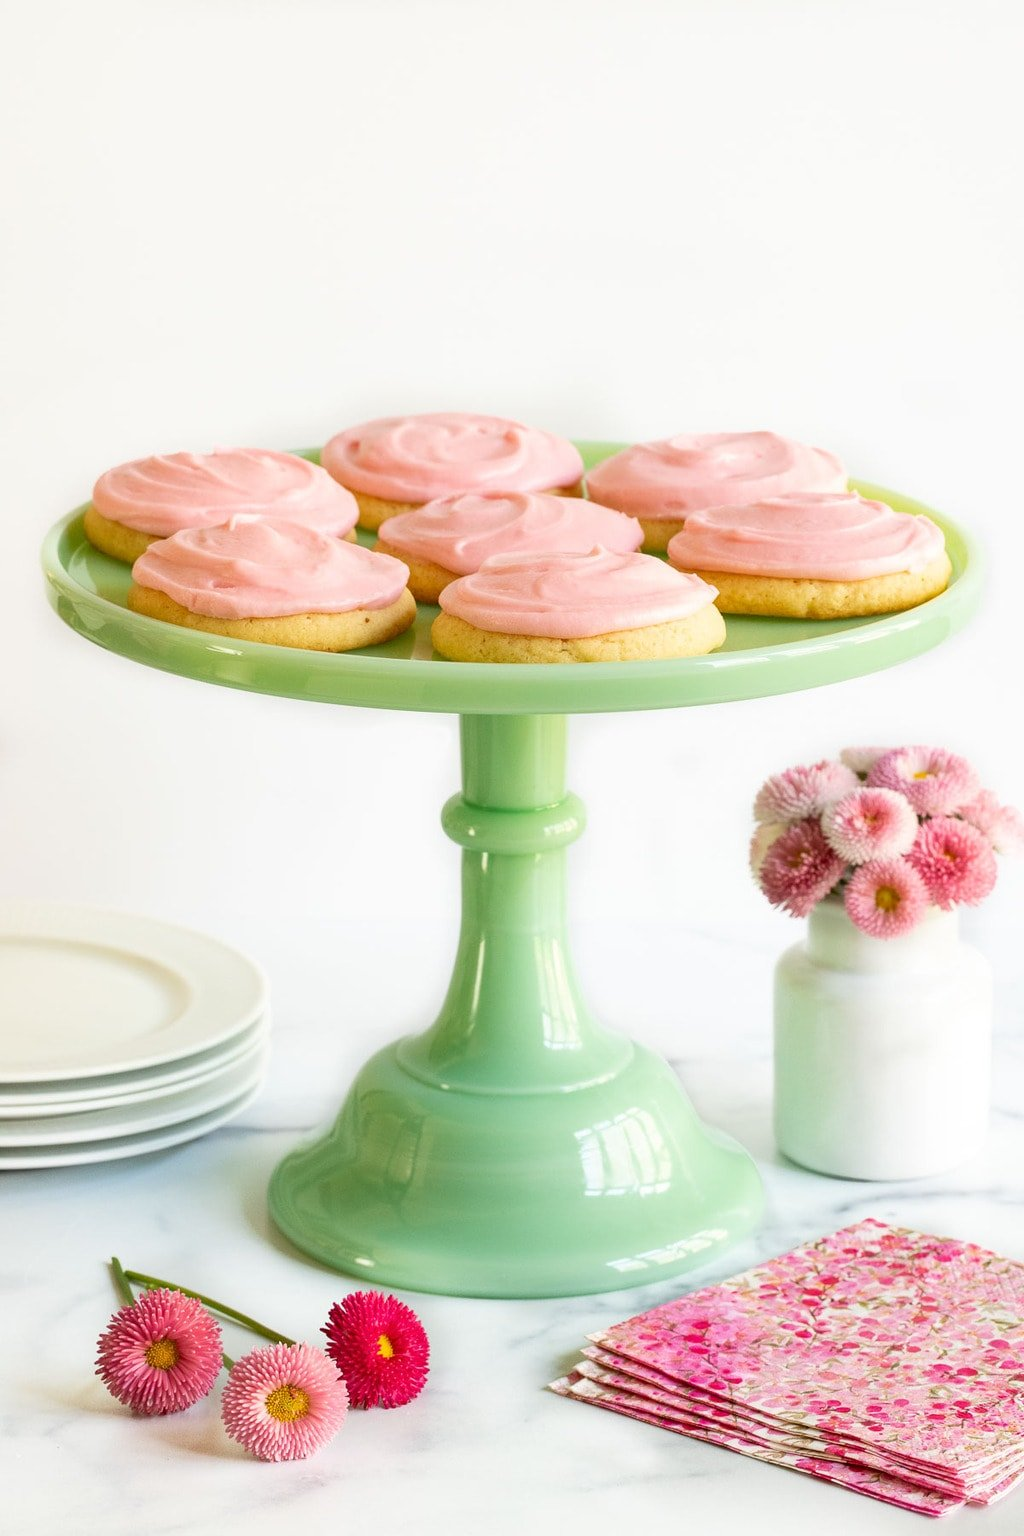 Vertical photo of a batch of Copycat Crumbl Sugar Cookies on a jade green marble pedestal presentation stand.